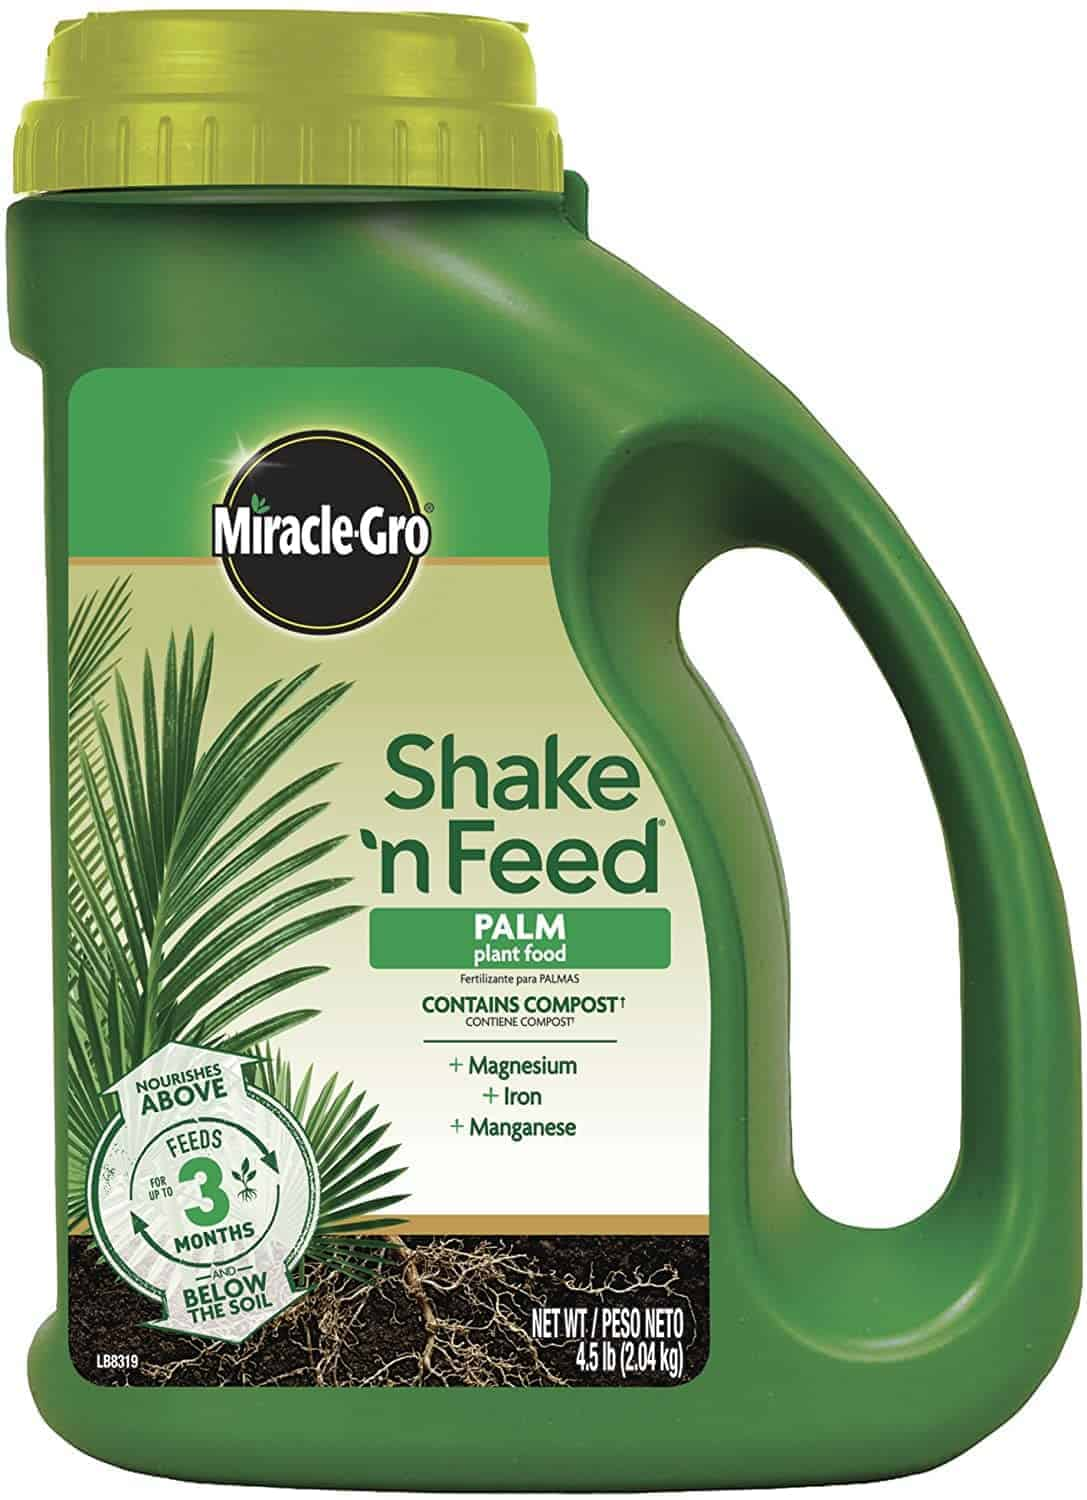 Miracle Gro Palm Tree Fertilizer Product Link